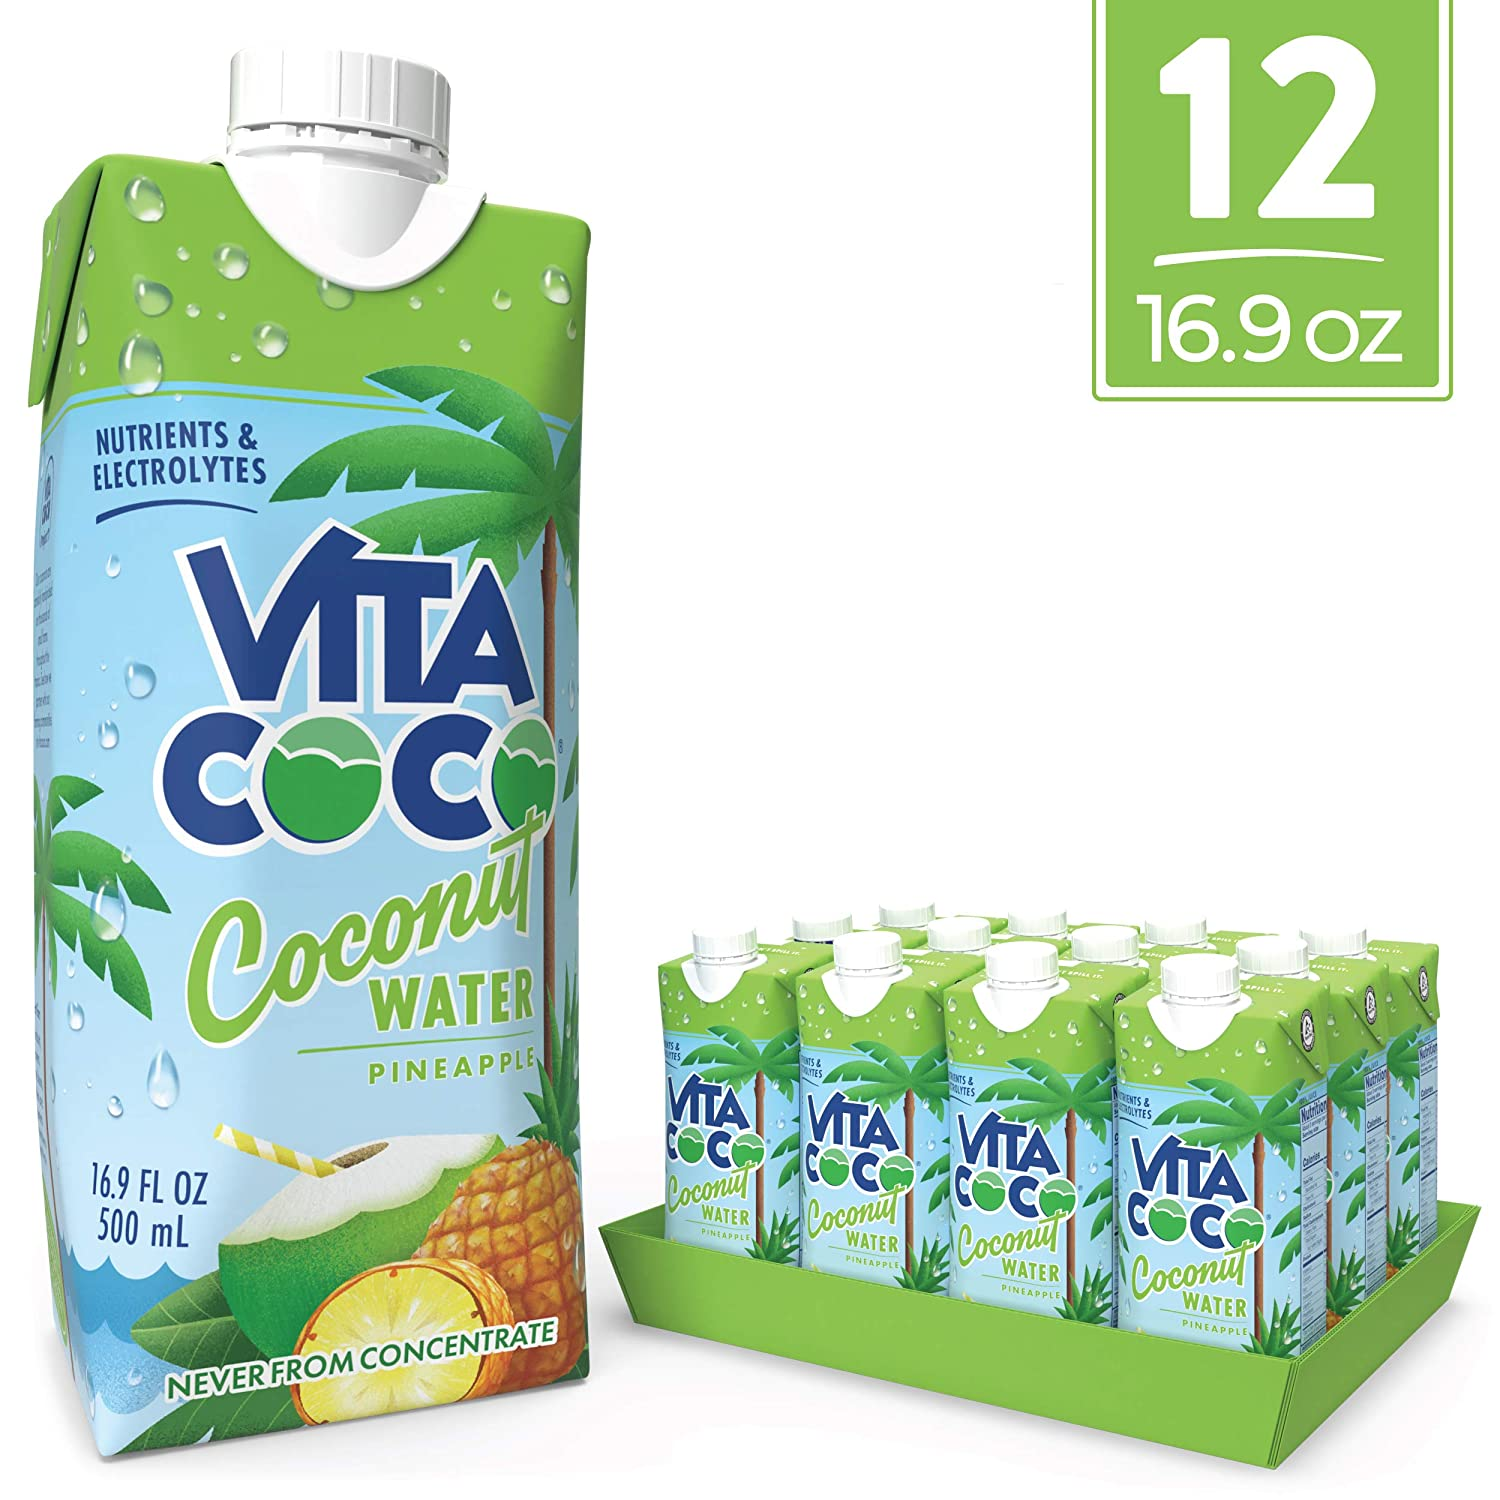 Vita Coco Coconut Water, Pineapple - Naturally Hydrating Electrolyte Drink - Smart Alternative to Coffee, Soda, and Sports Drinks - Gluten Free - 16.9 Ounce (Pack of 12) 81T8xfNVj6L